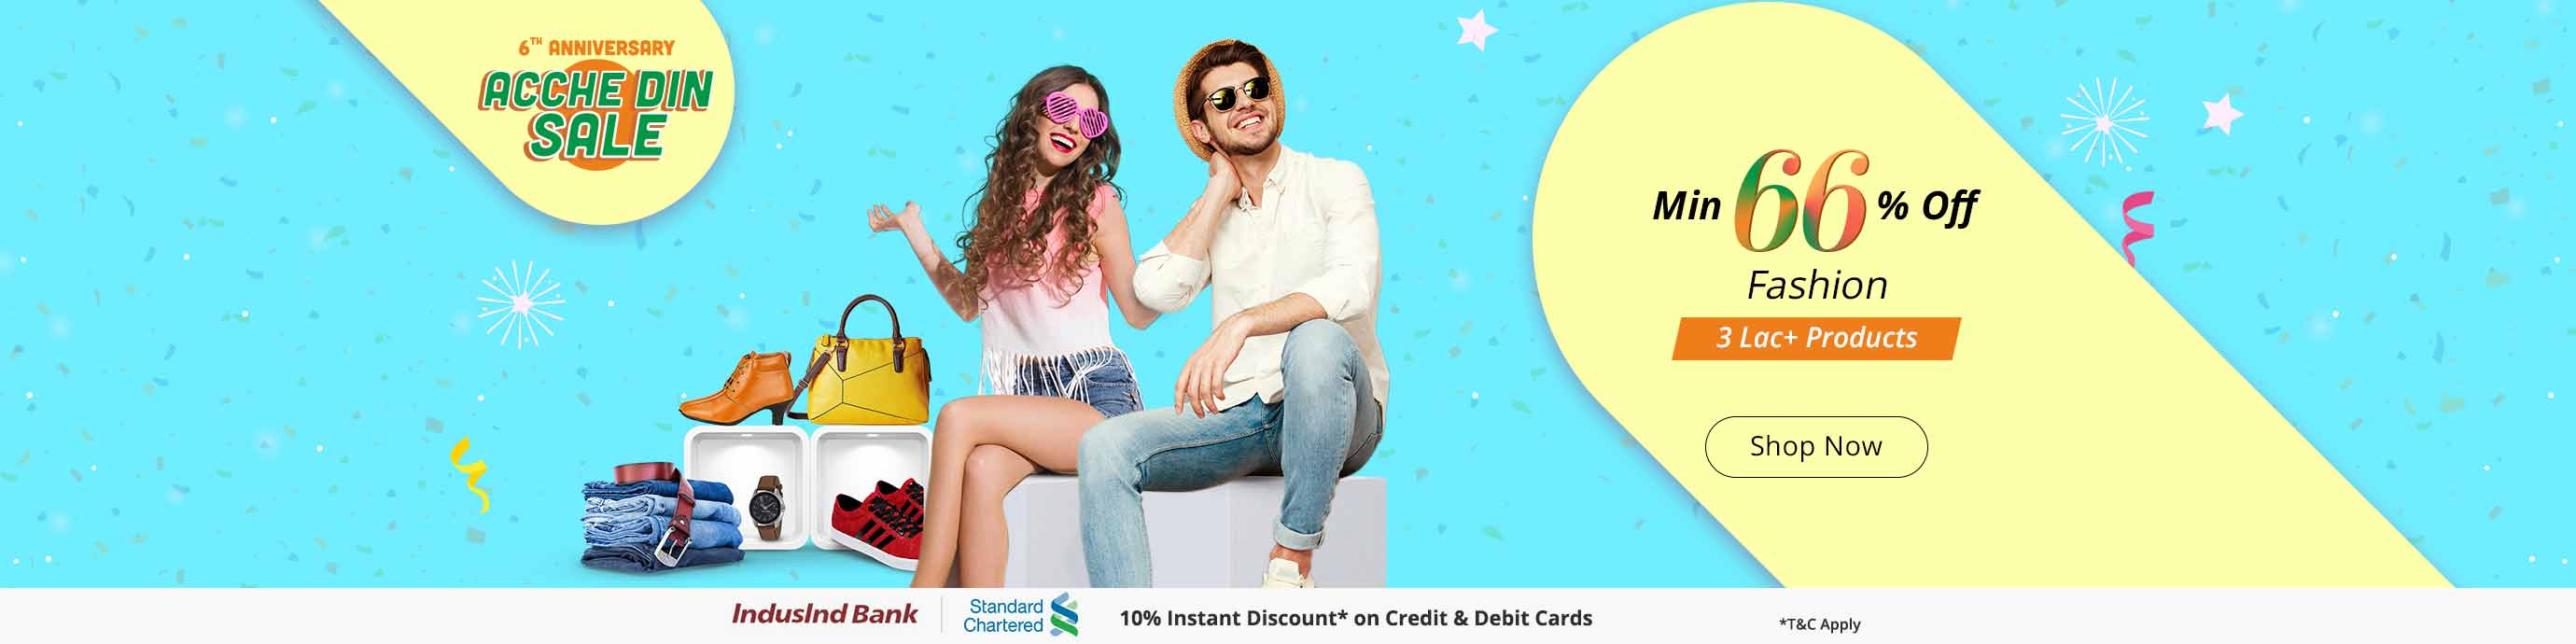 ShopClues 6th Anniversary sale